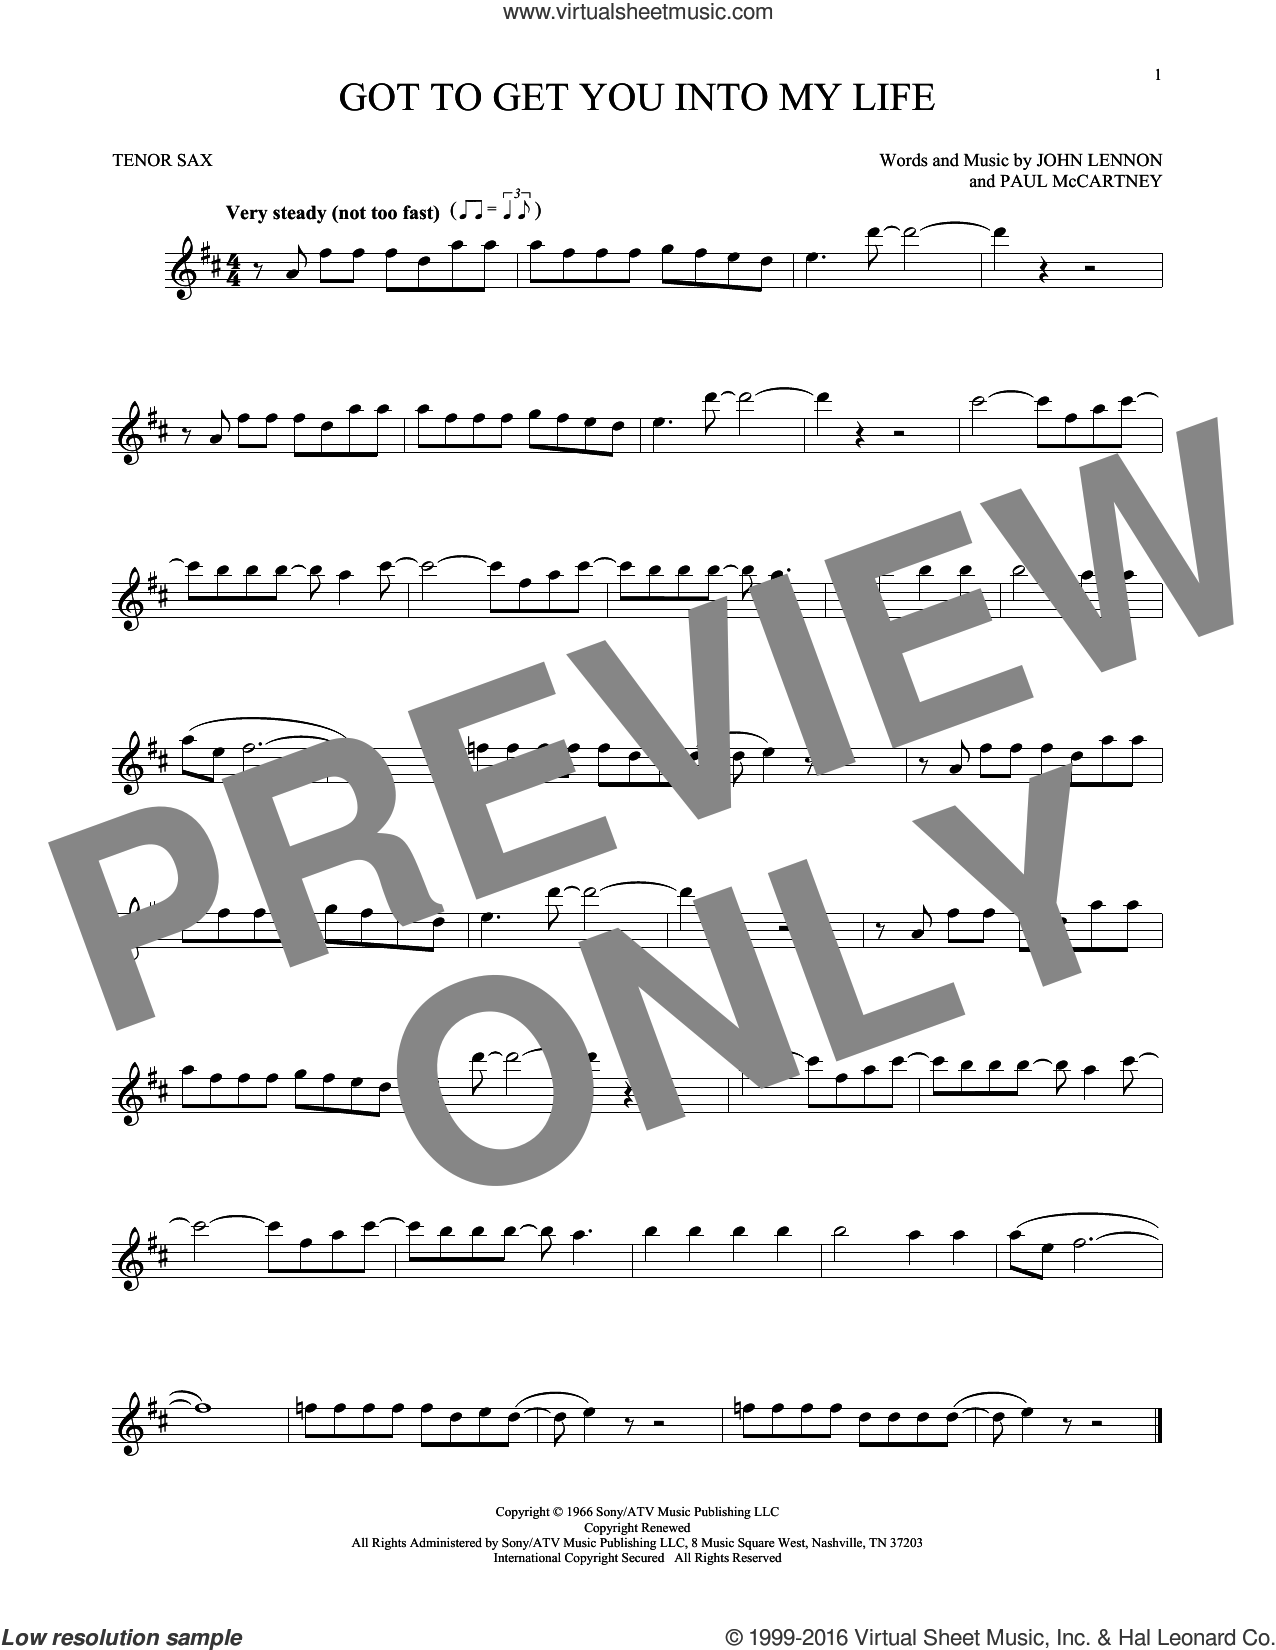 Got To Get You Into My Life sheet music for tenor saxophone solo by The Beatles, John Lennon and Paul McCartney, intermediate tenor saxophone. Score Image Preview.